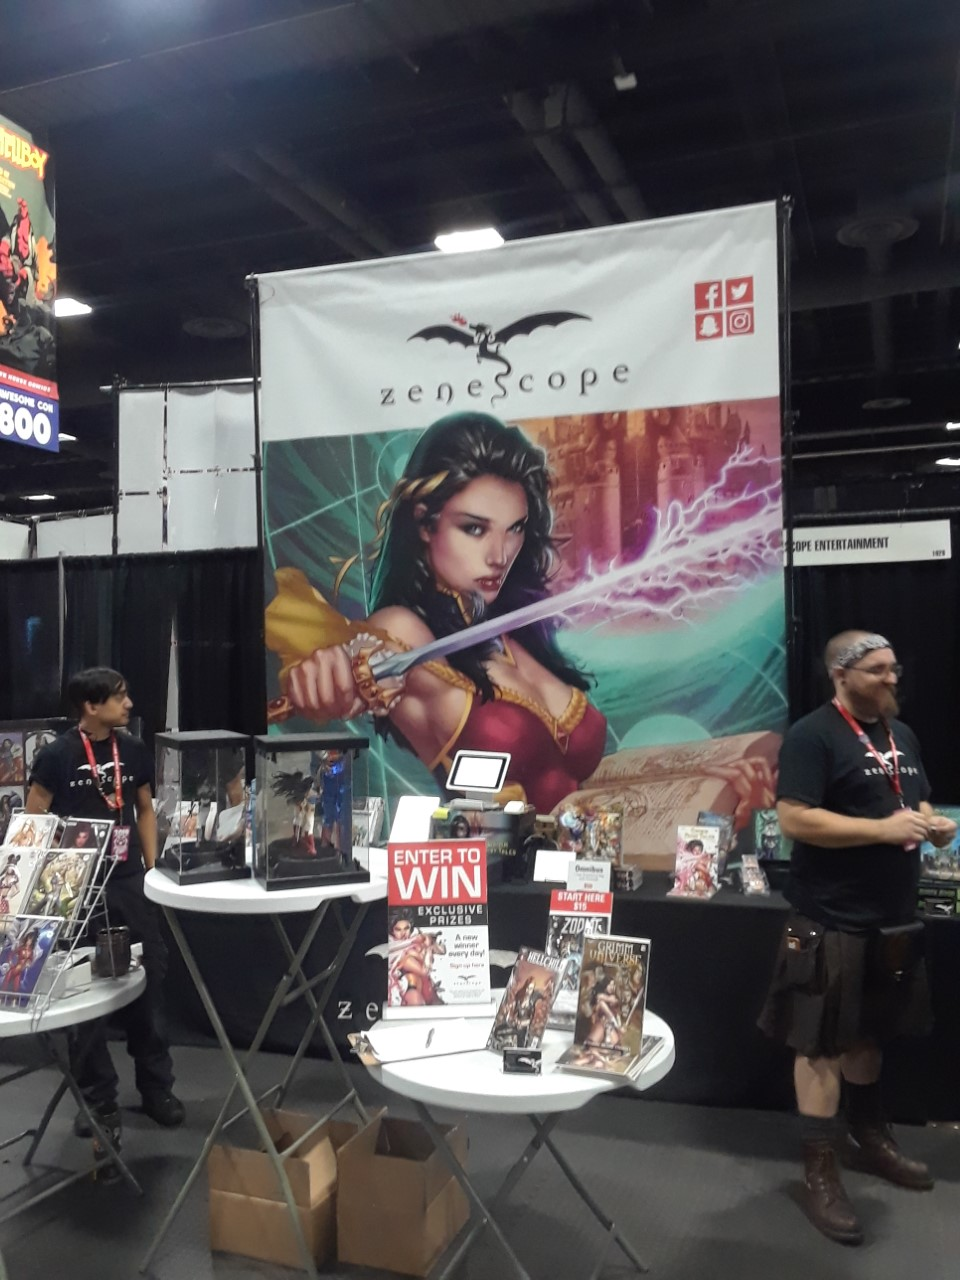 Geek insider, geekinsider, geekinsider. Com,, awesome con 2019: the mid-atlantic's biggest con continues to grow, geek life, culture, entertainment, events, featured